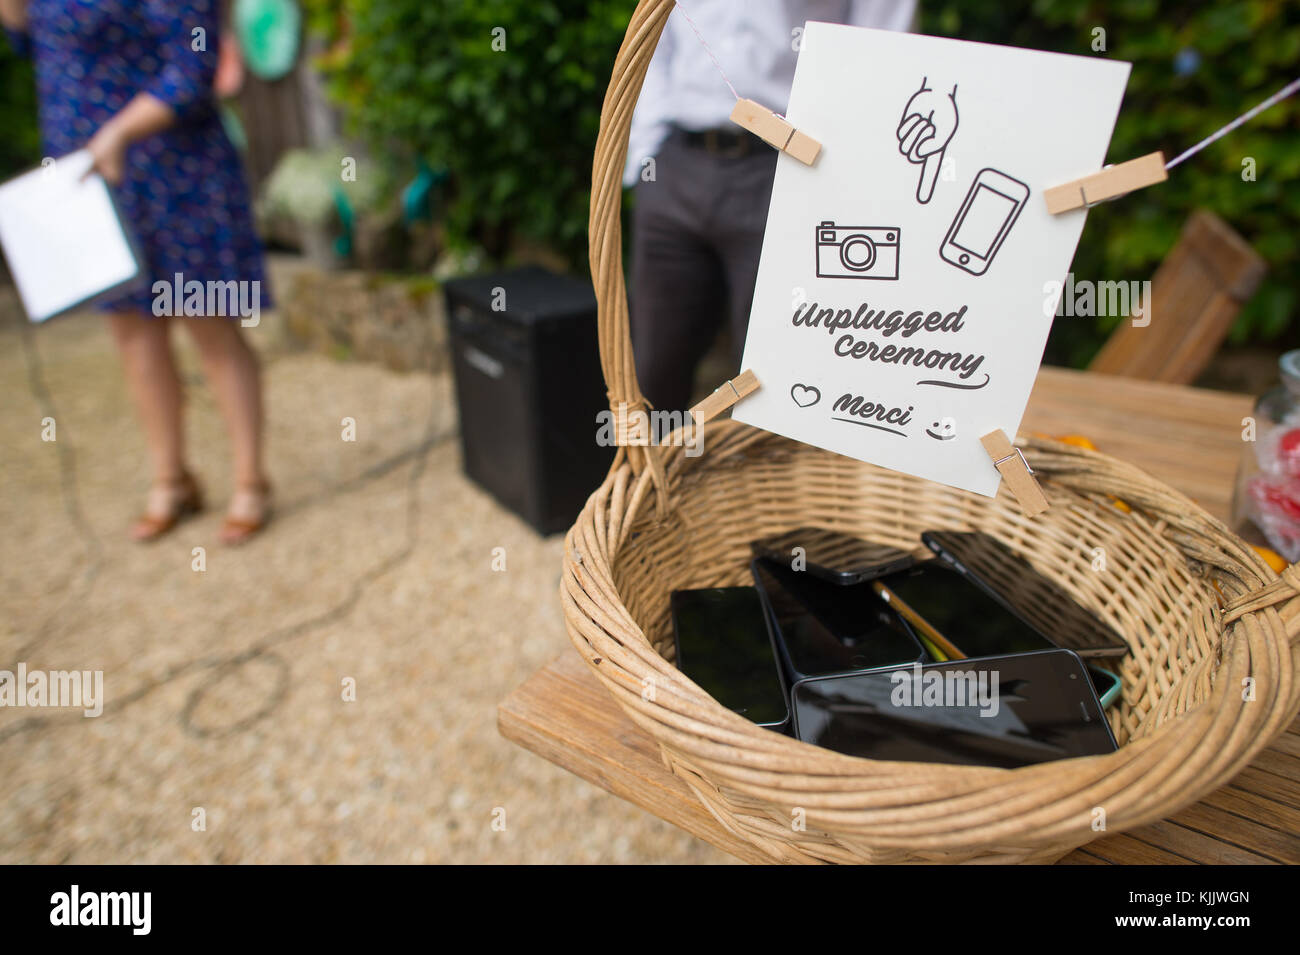 Cell phone basket. France. - Stock Image